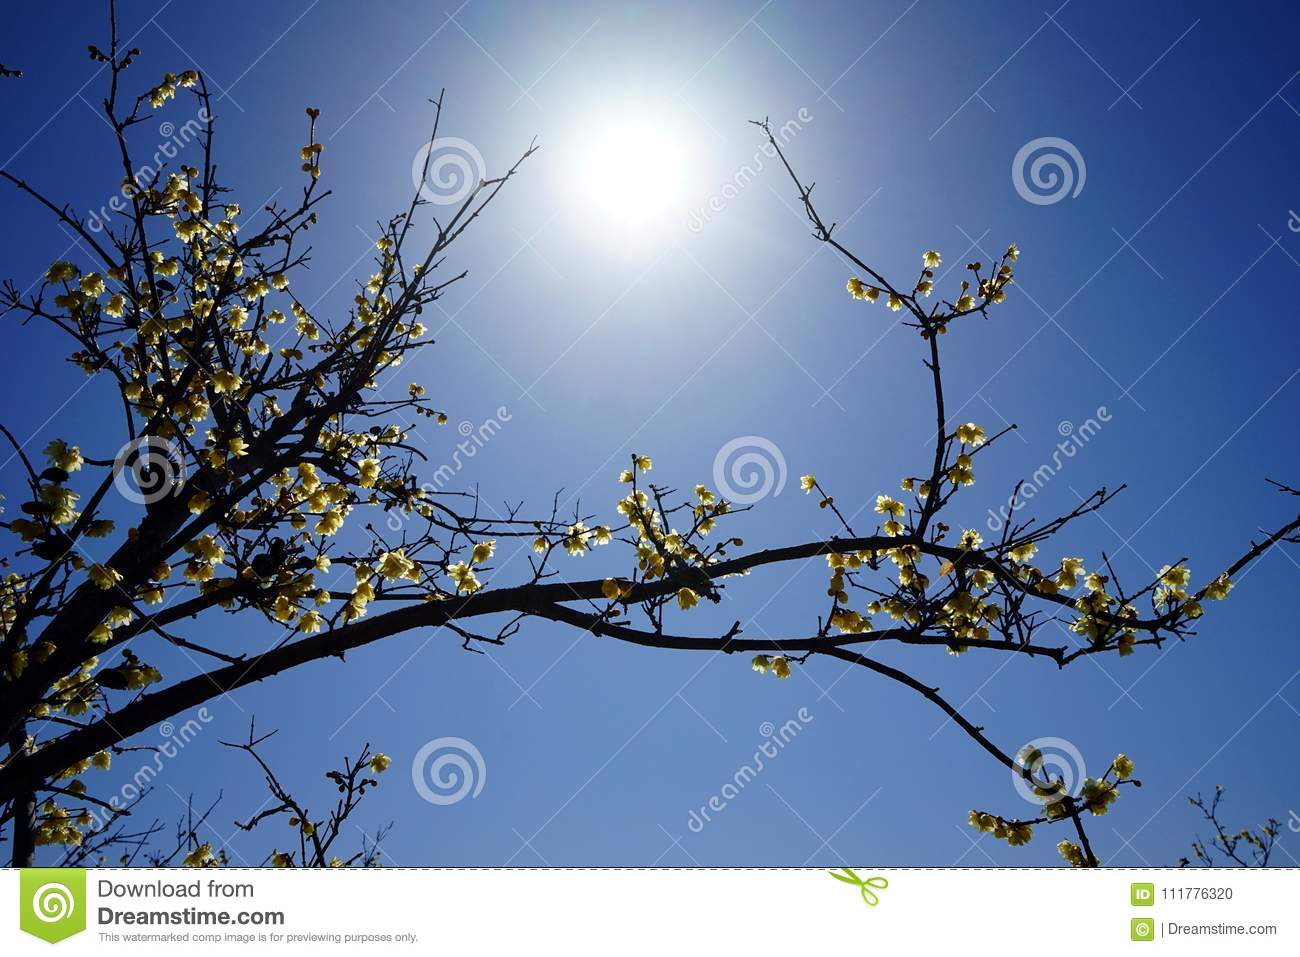 Plum branches reaching to the sun